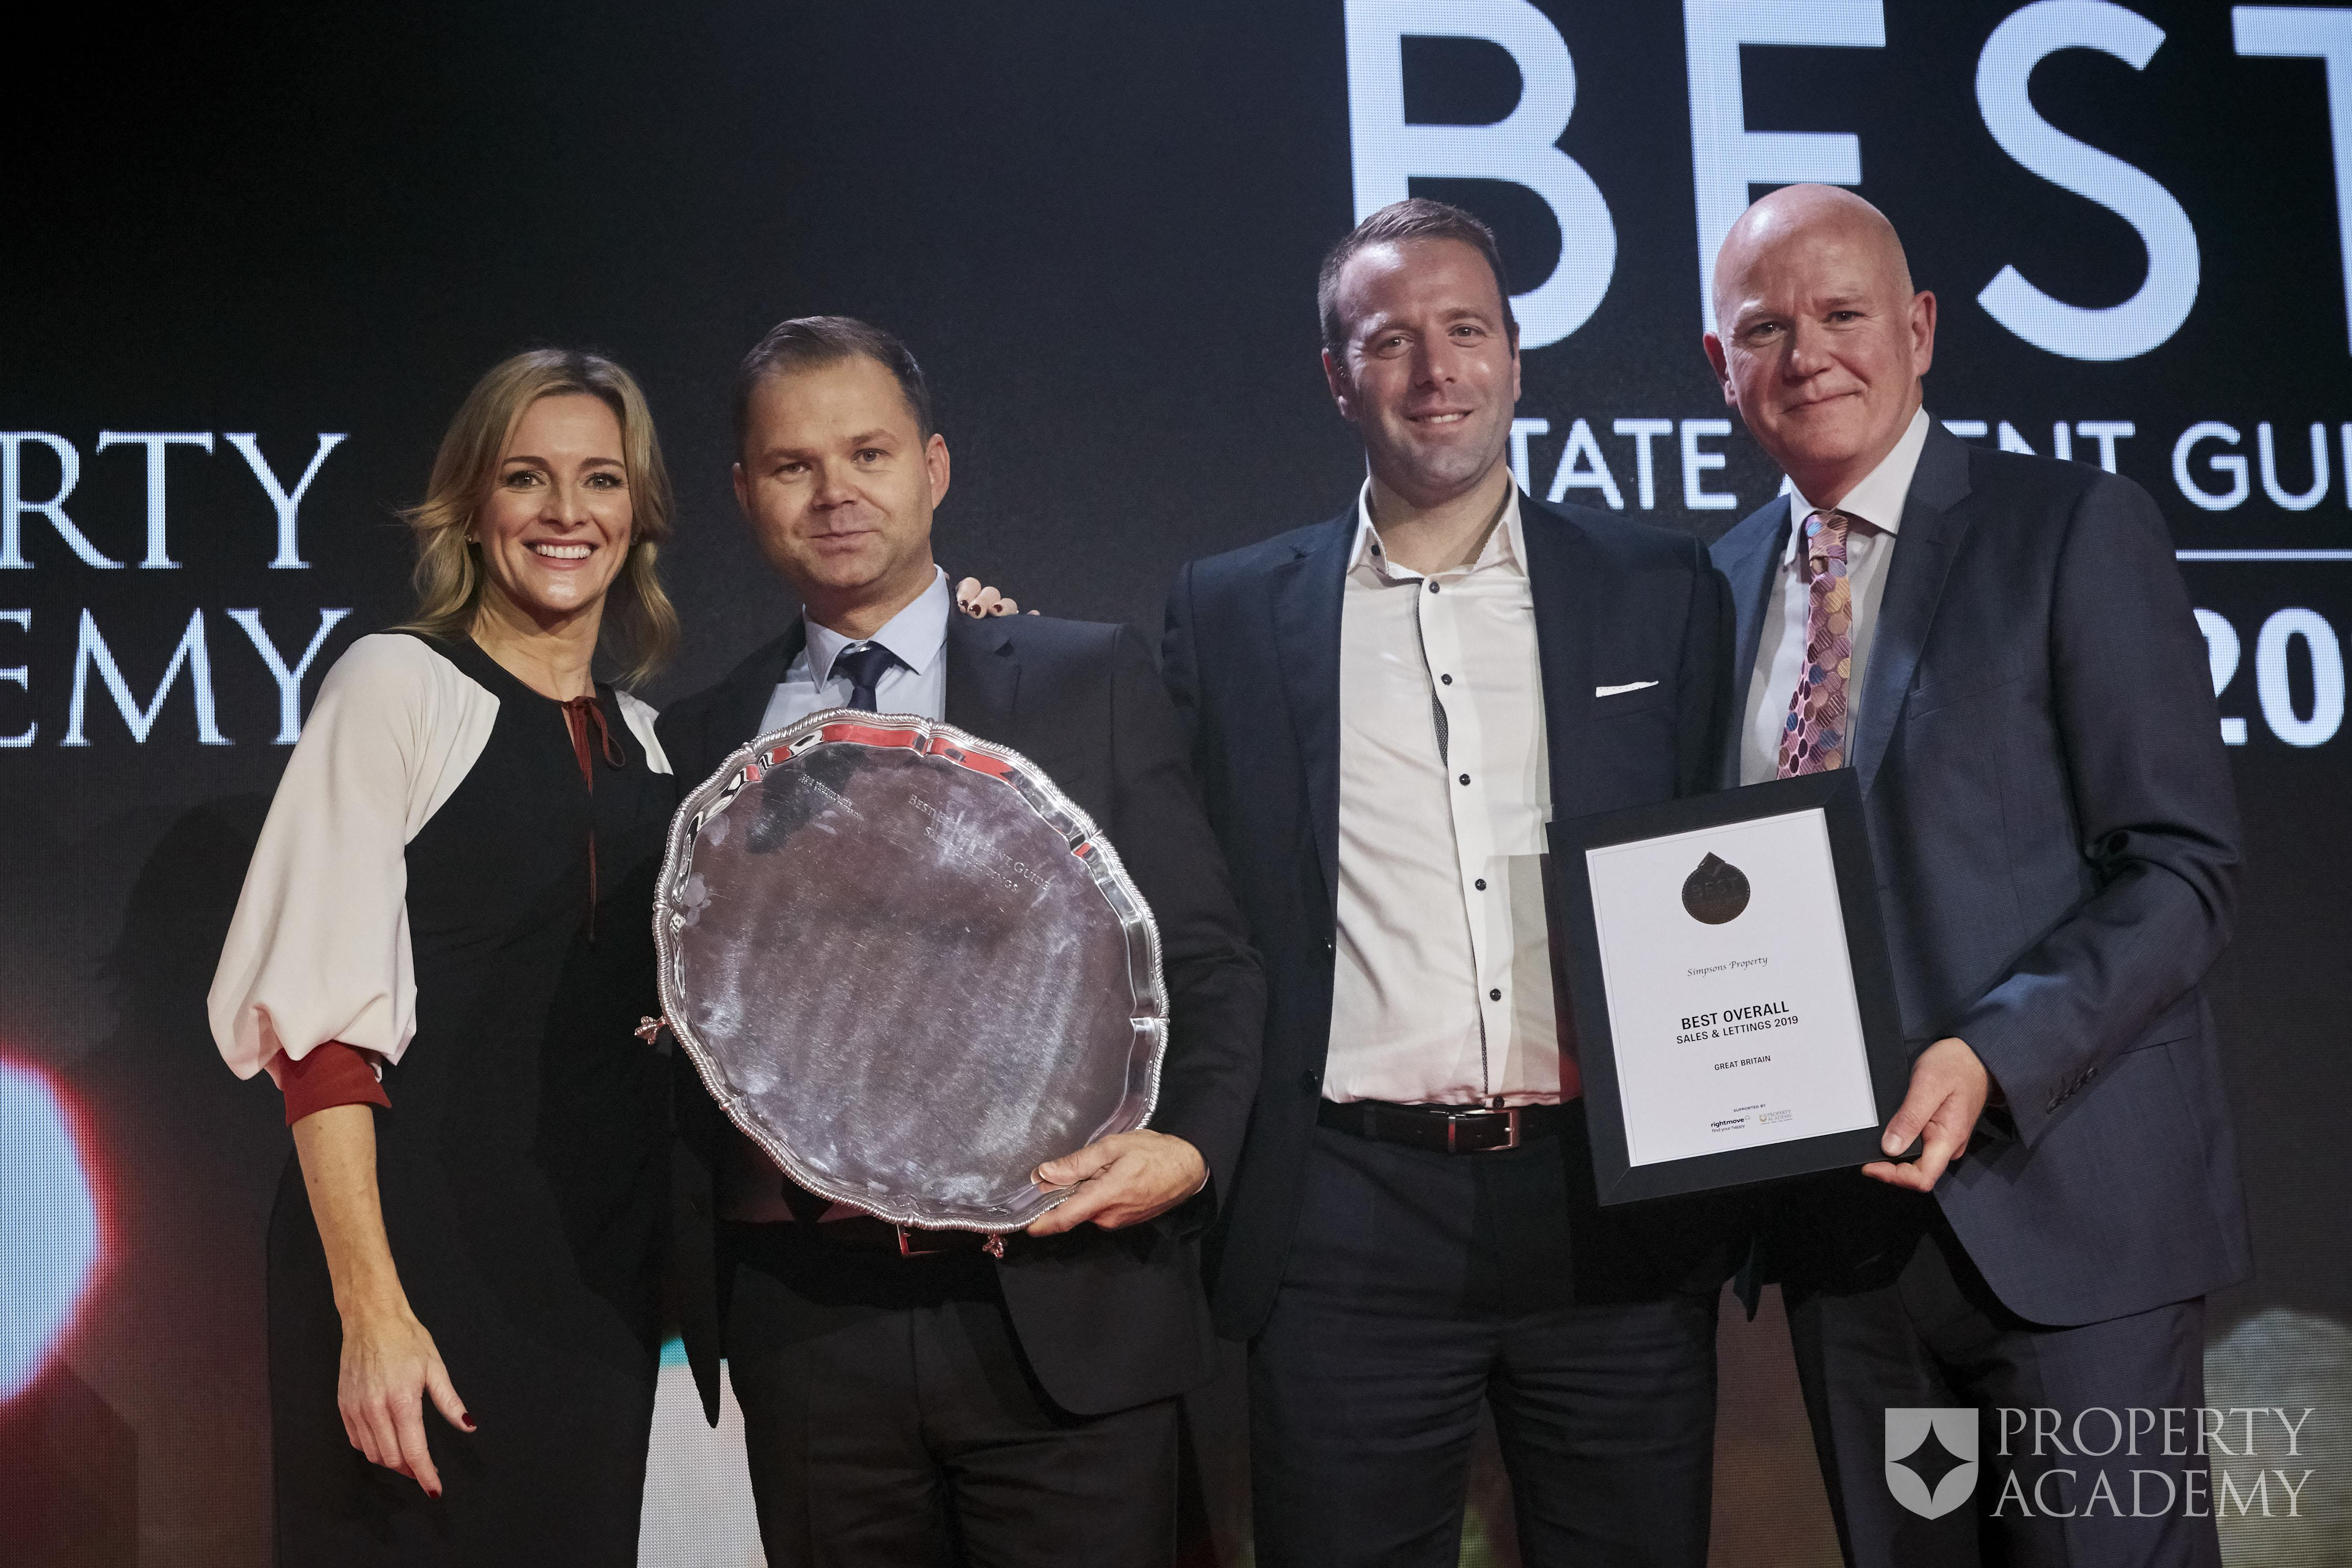 Simpsons Estate Agency Win National, Excellence Award